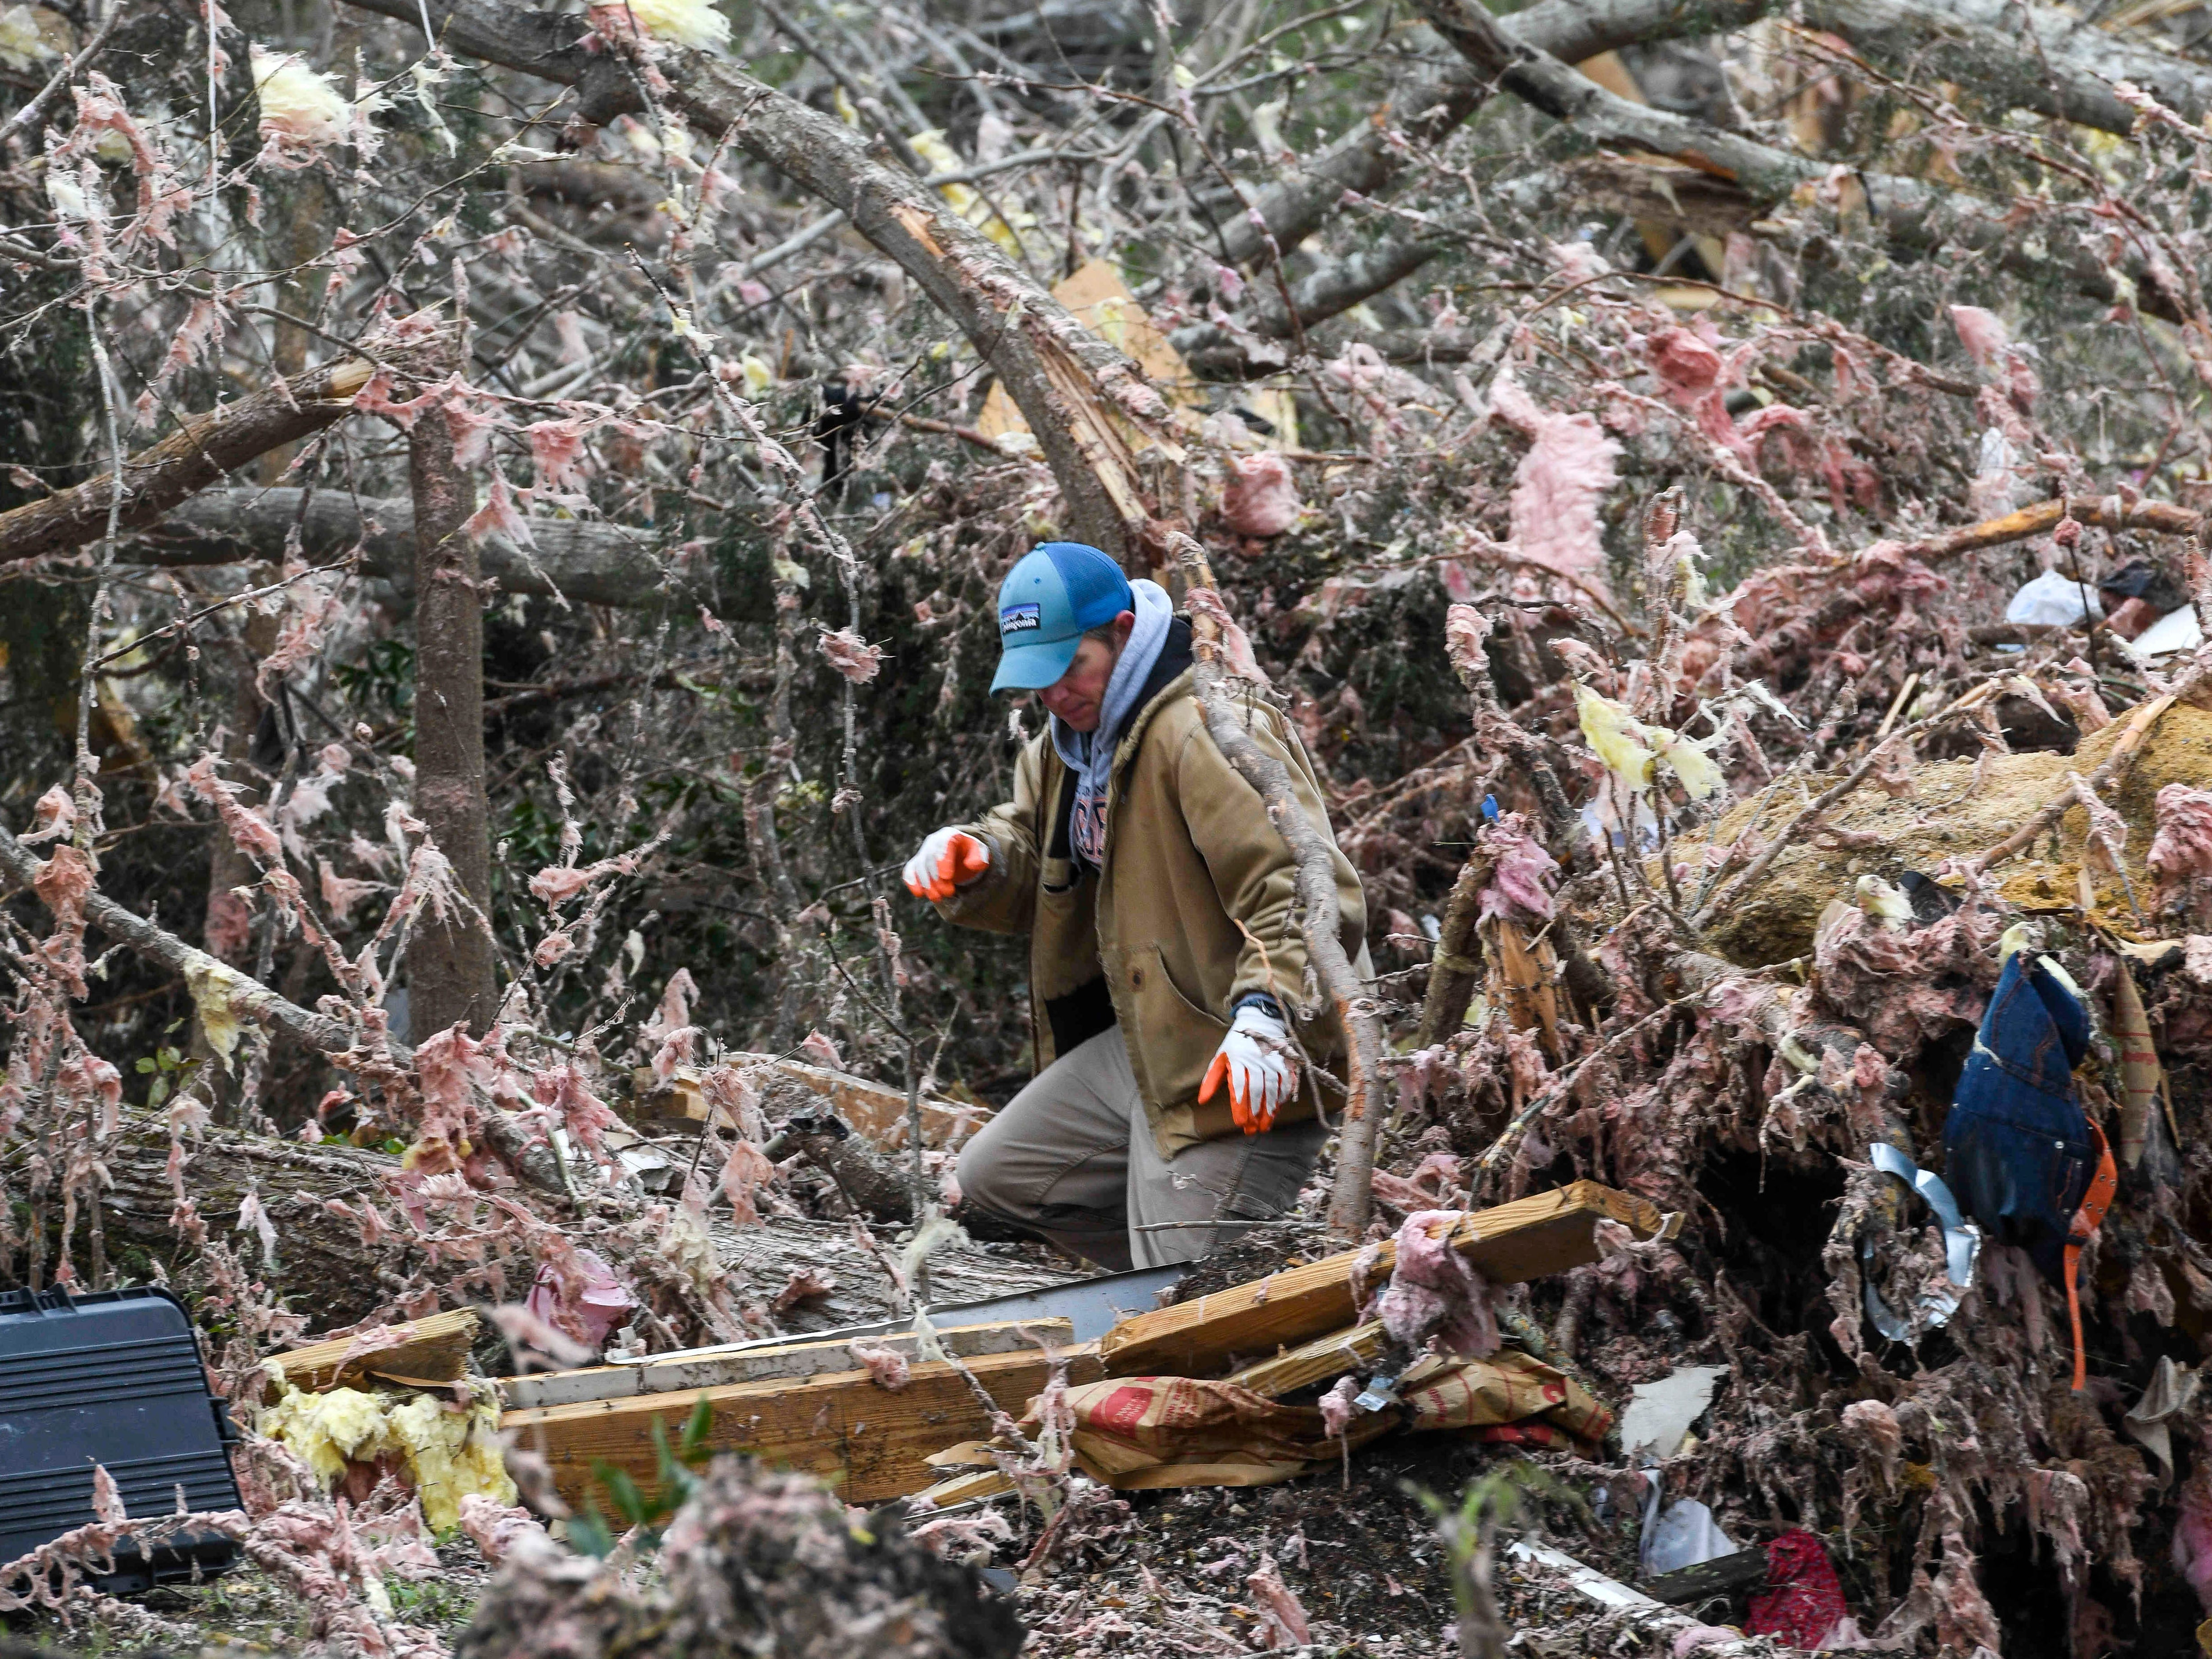 A resident looks through the debris of a family member's destroyed home the day after a deadly tornado ravaged the area, in Beauregard, Ala., March 4, 2019.